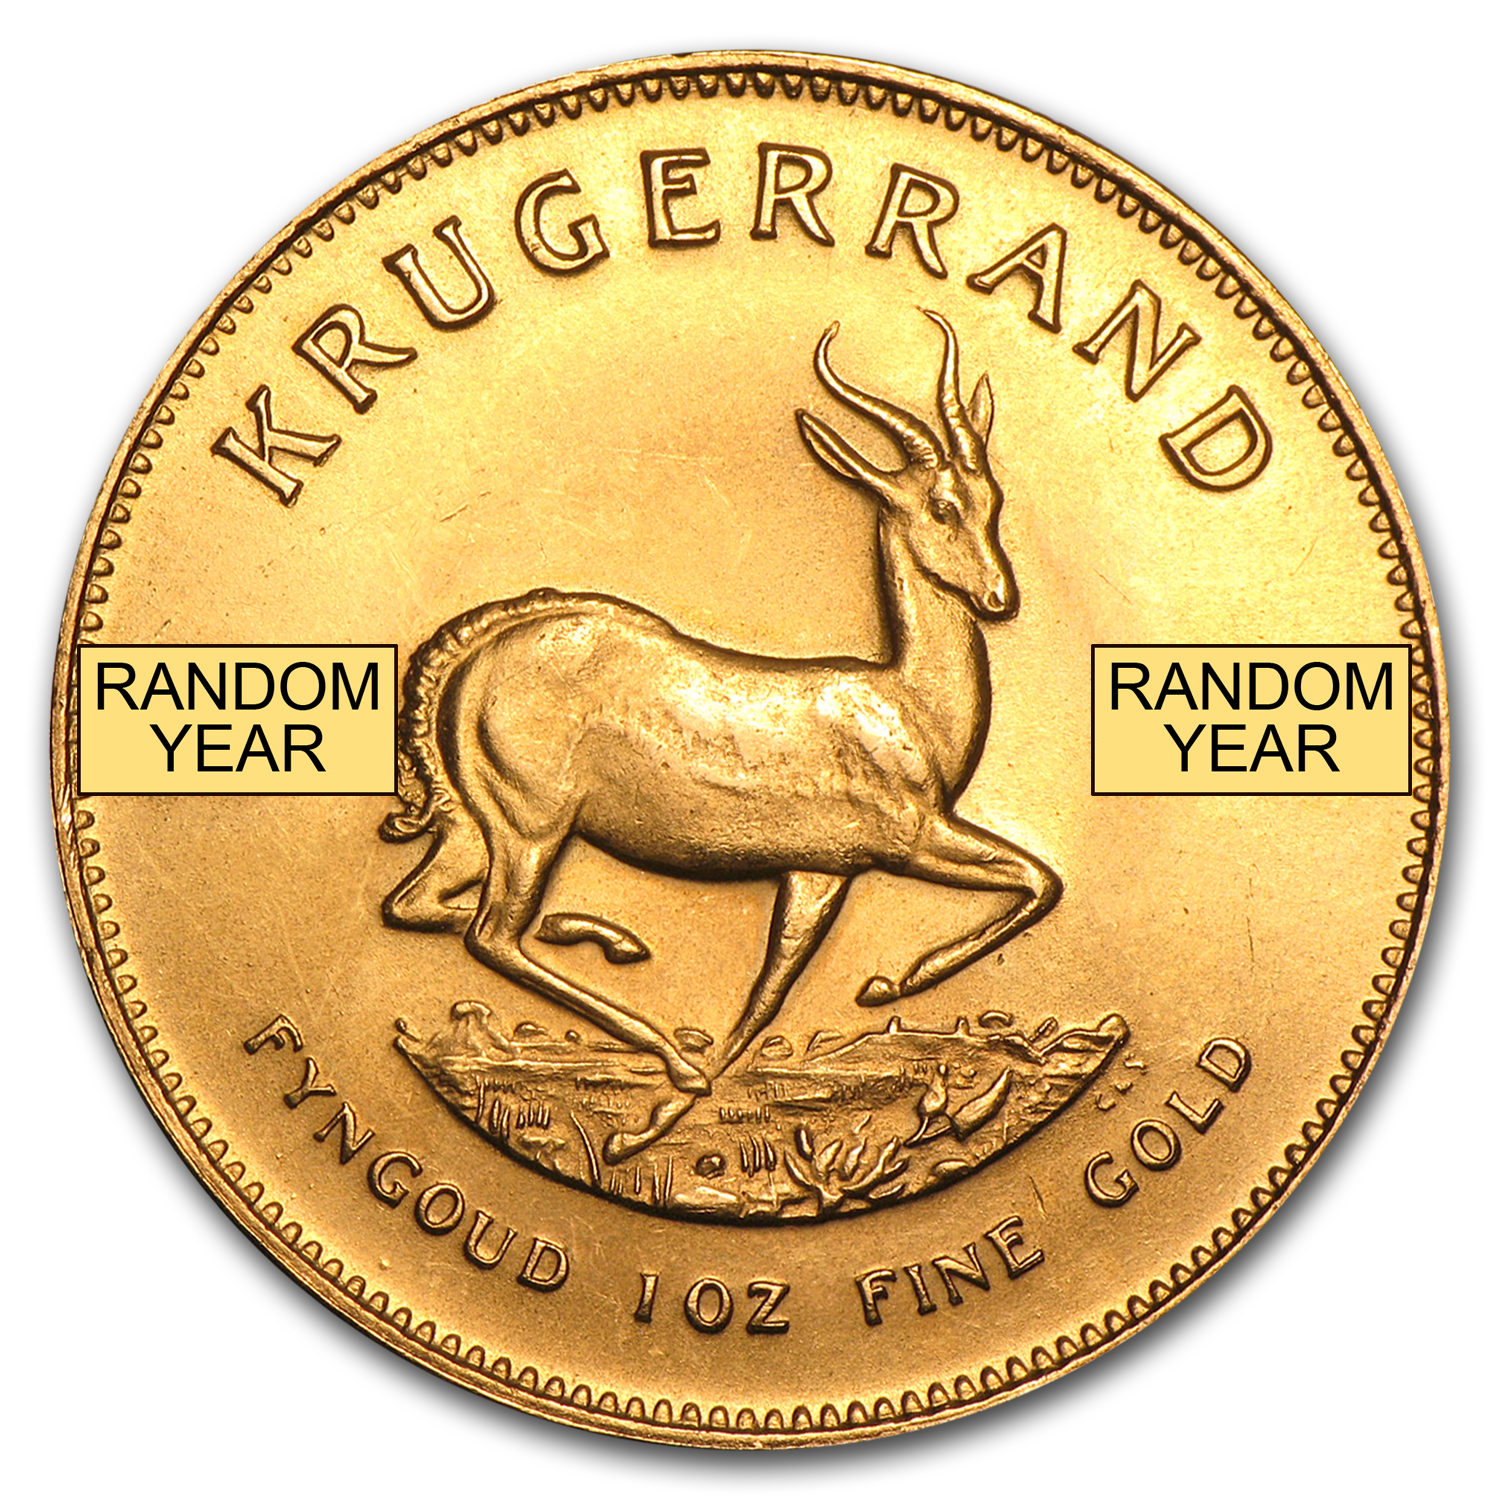 1 oz Gold South African Krugerrand (Abrasions)